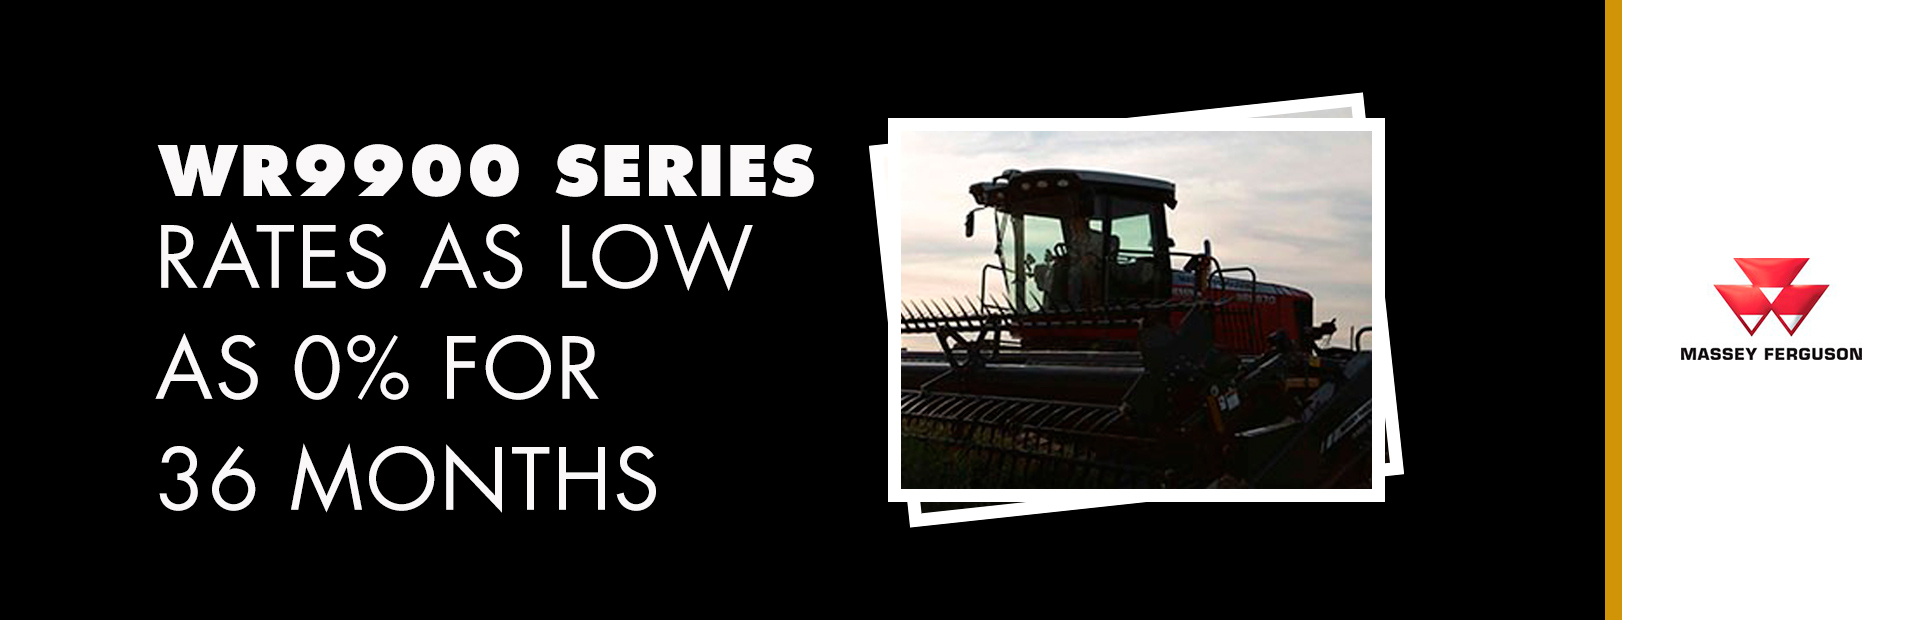 Massey Ferguson: WR9900 Series - Rates as low as 0% for 36 Months